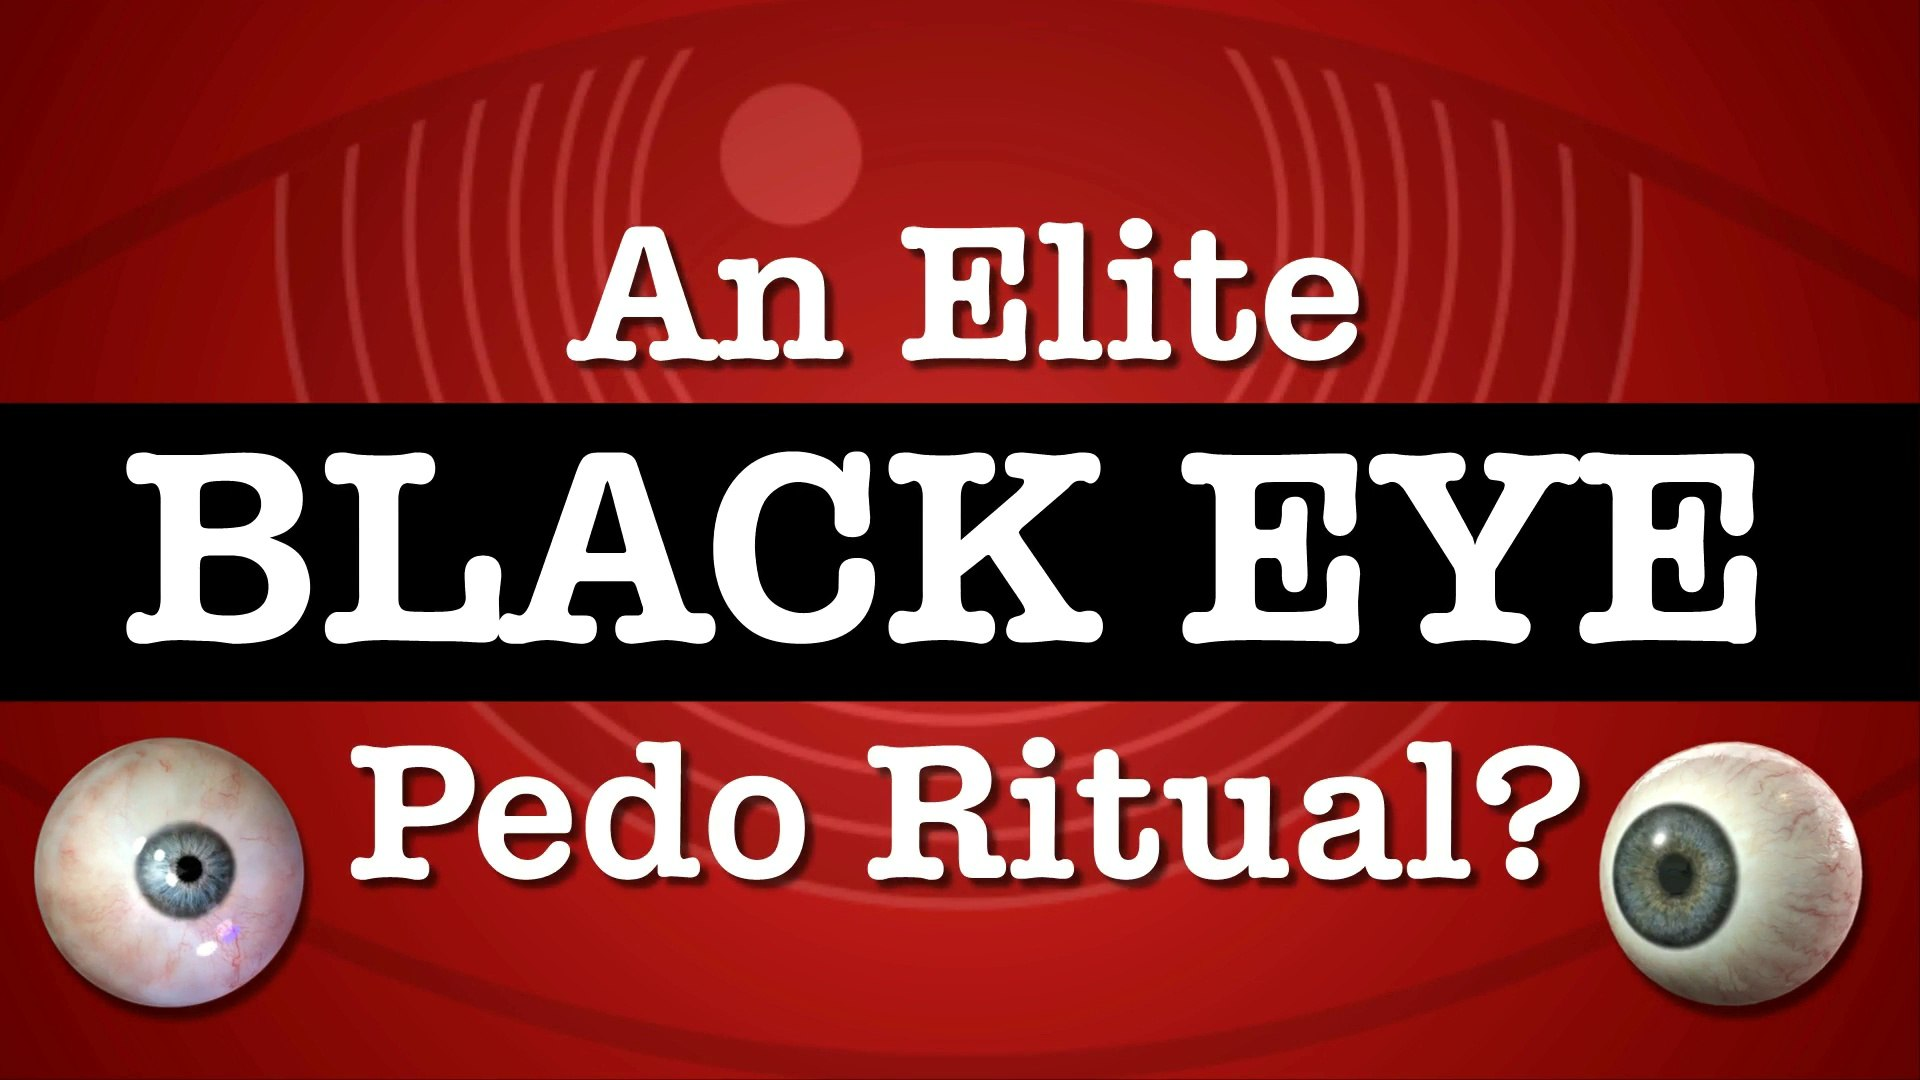 Elites Using Black Eyes As Sign For Pedophile Club?